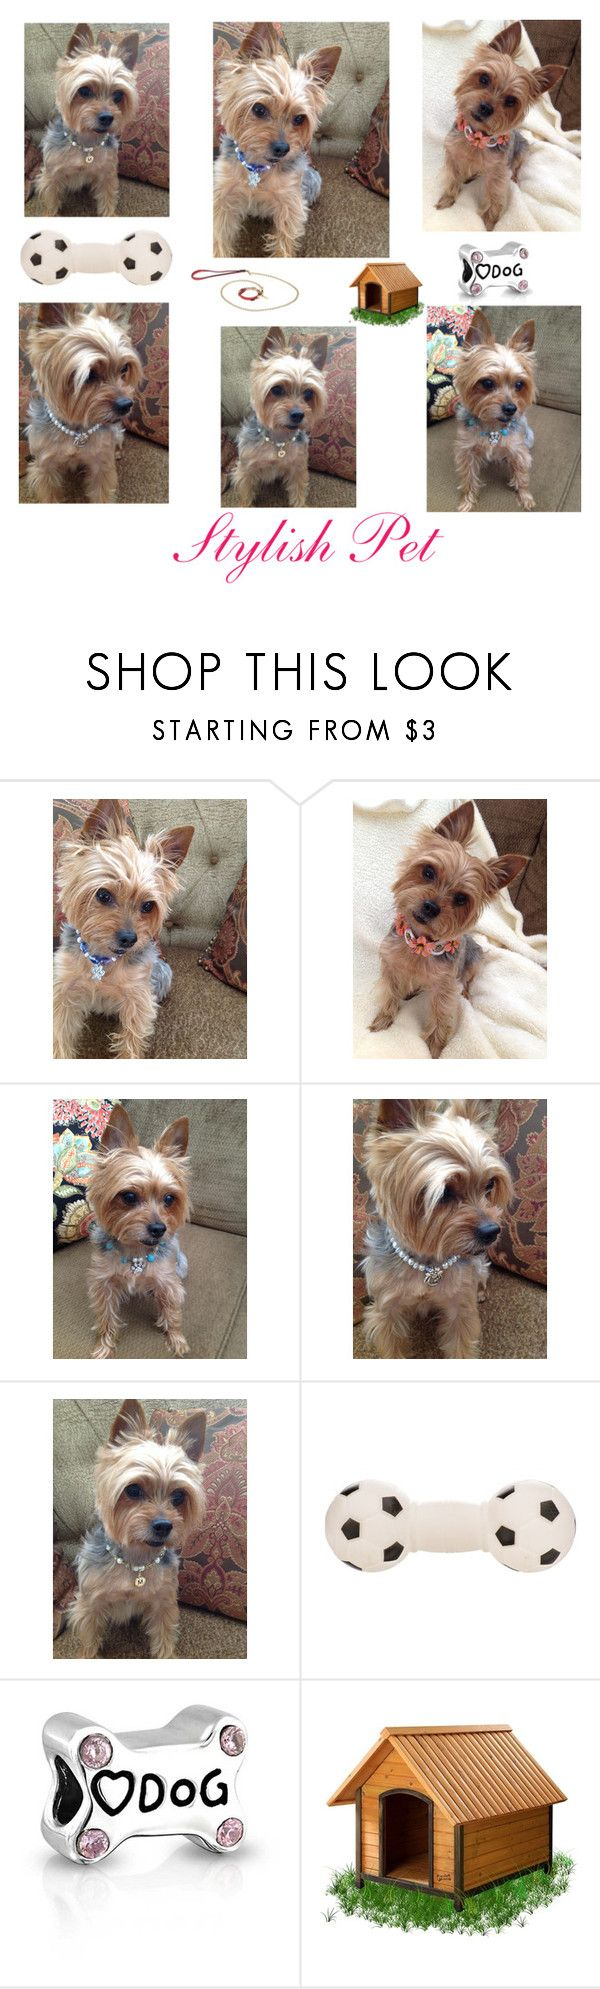 """""""Stylish Pet"""" by meeko789 ❤ liked on Polyvore featuring Bling Jewelry and Frida Firenze"""